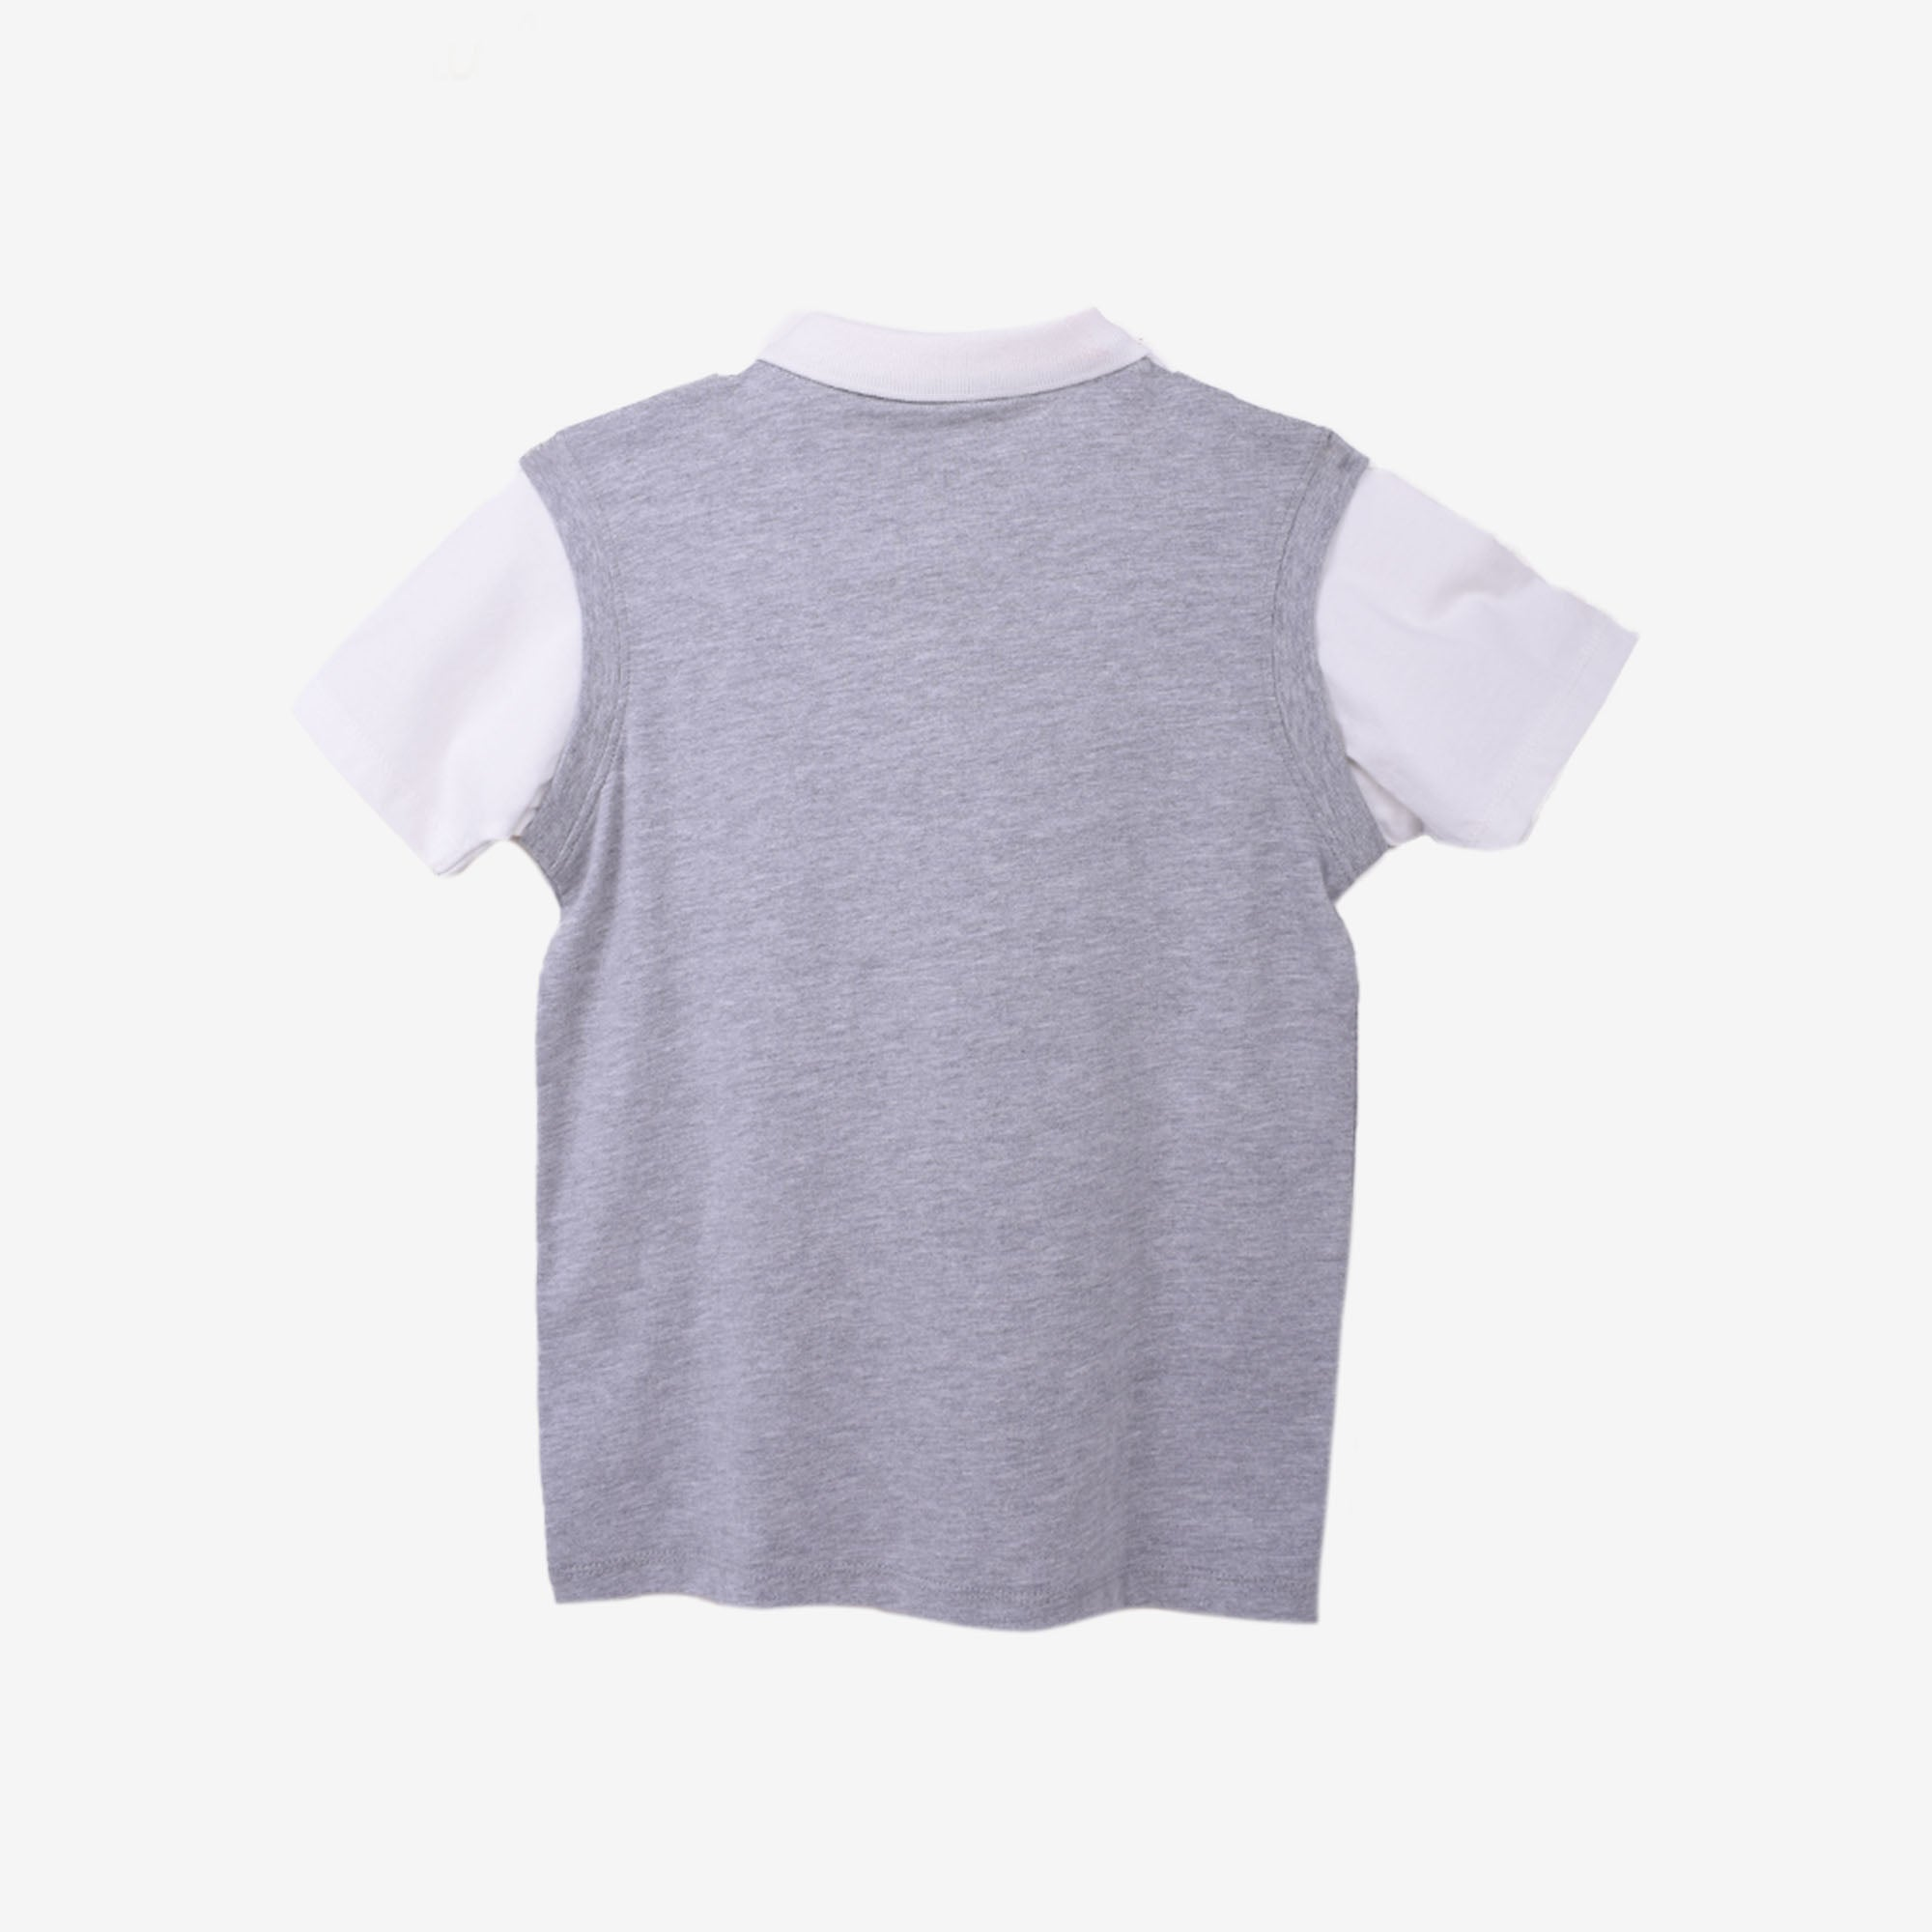 100% Cotton Fake 2 Piece Collar Tee